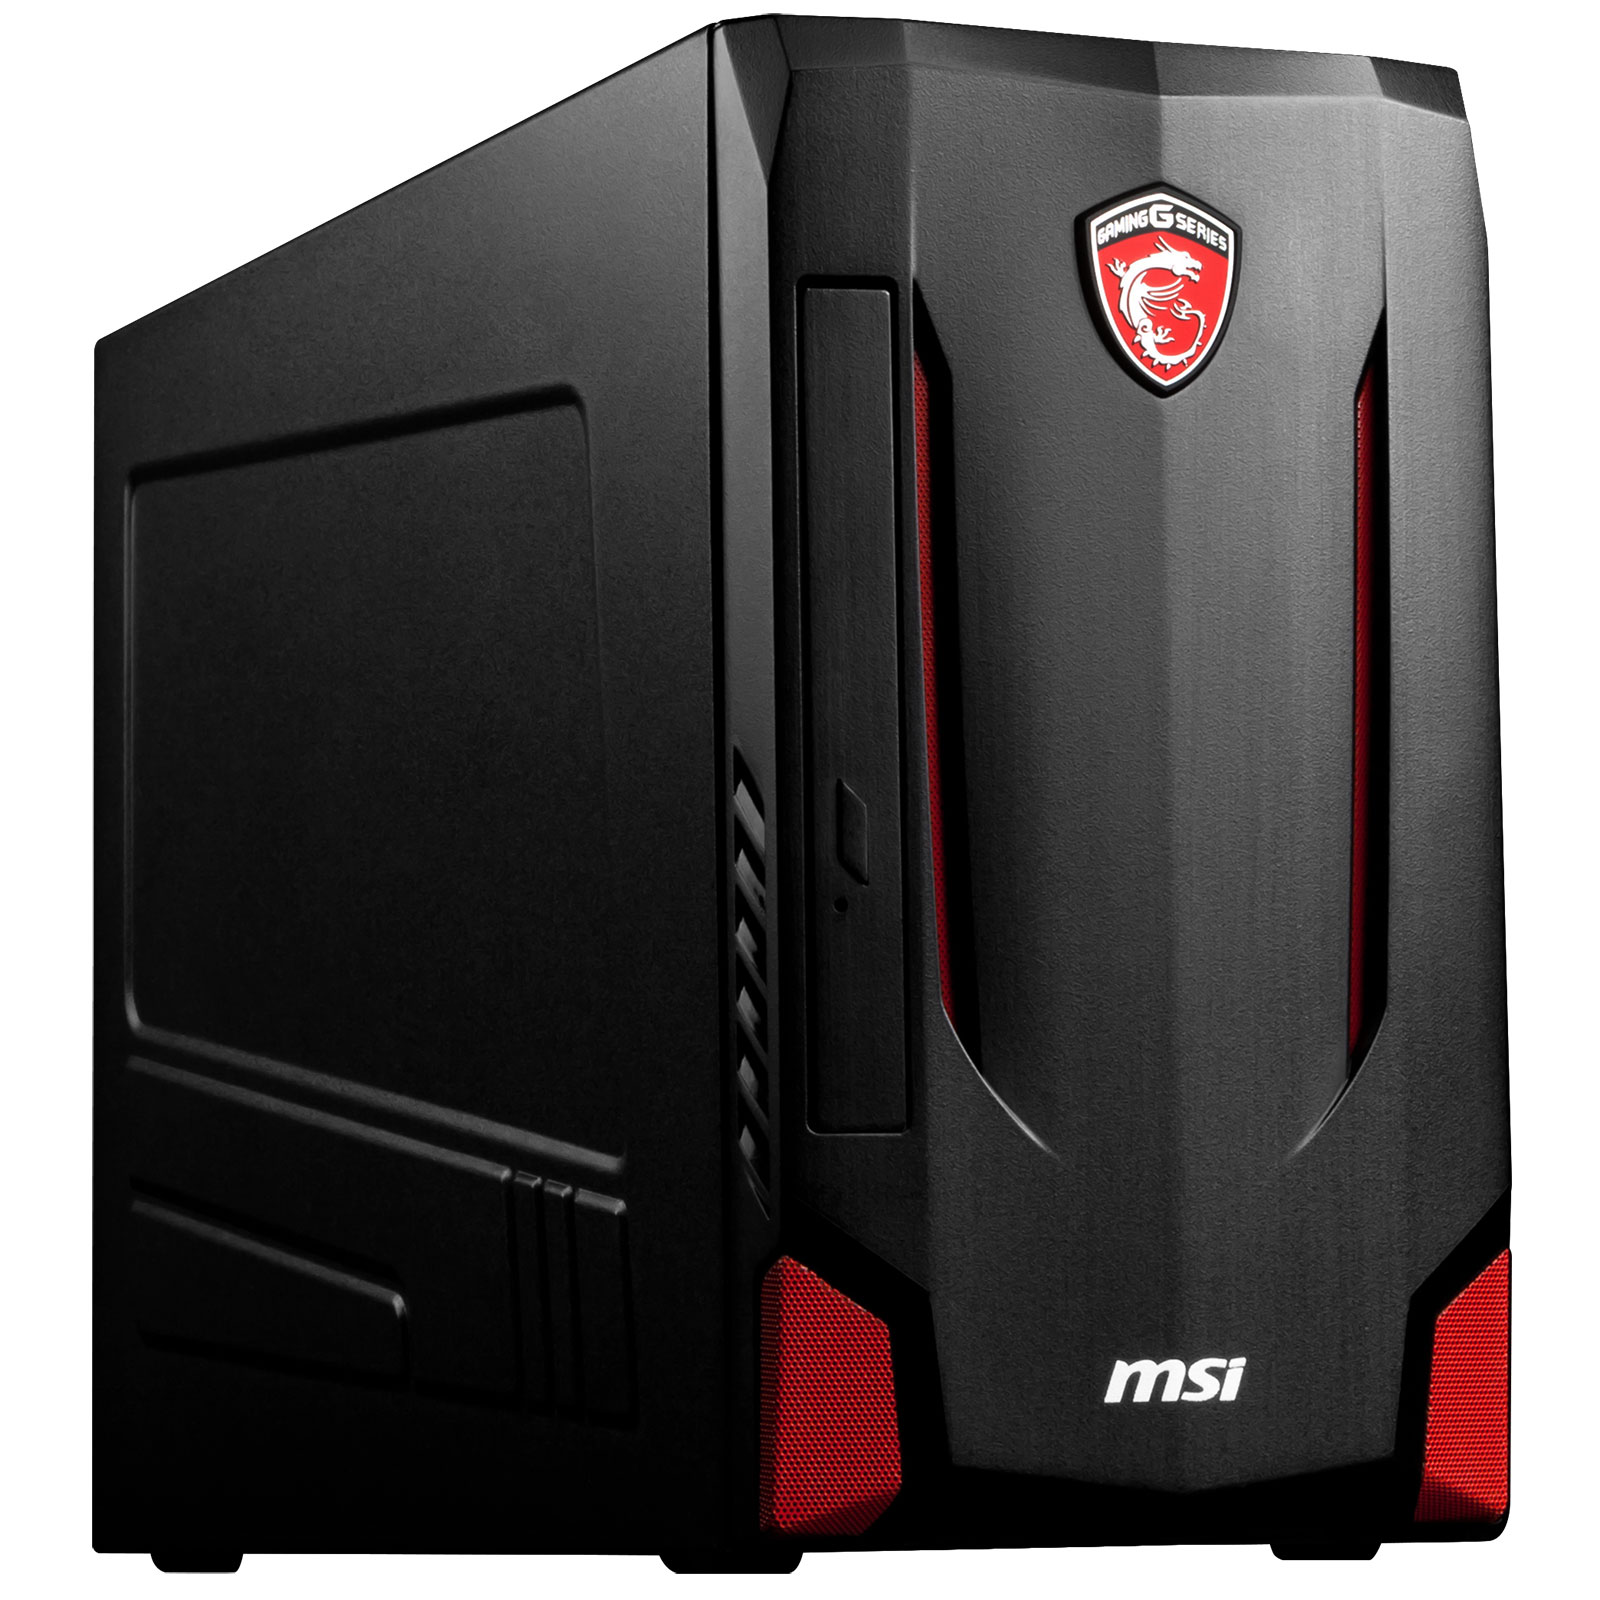 msi nightblade mi 014eu pc de bureau msi sur ldlc. Black Bedroom Furniture Sets. Home Design Ideas